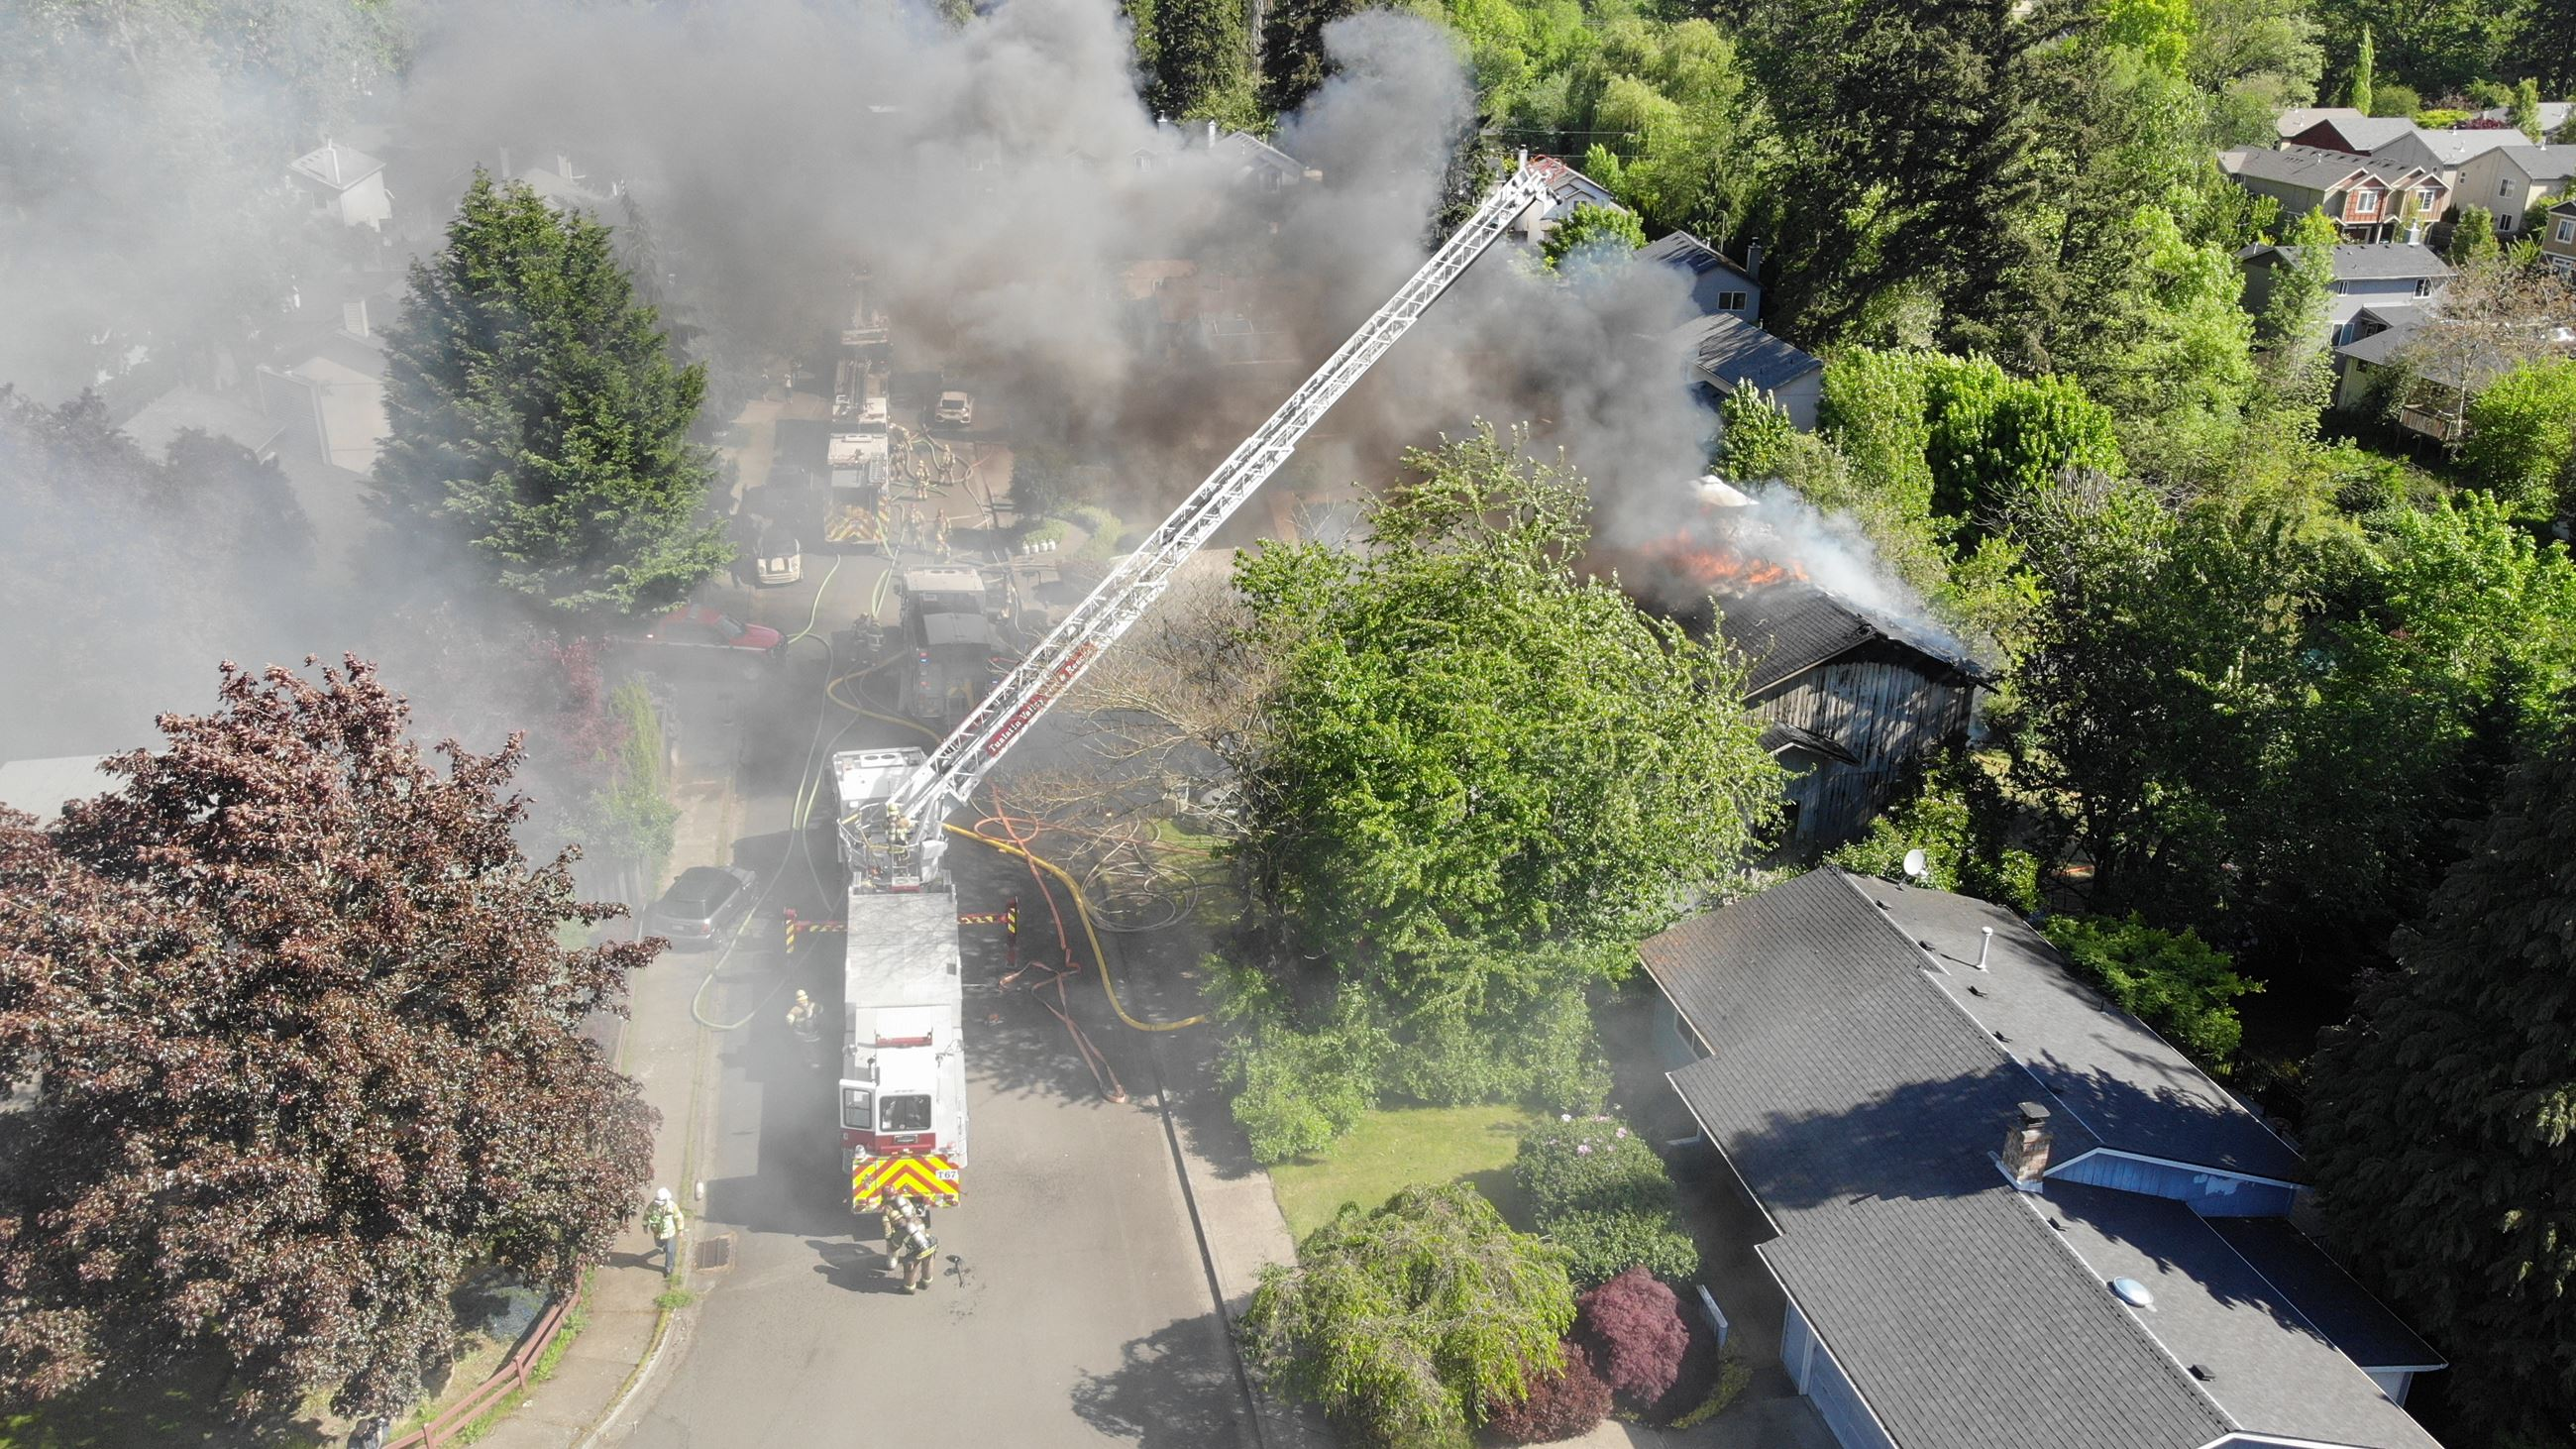 UAS view of the 175th Ave. Residential Fire in Aloha